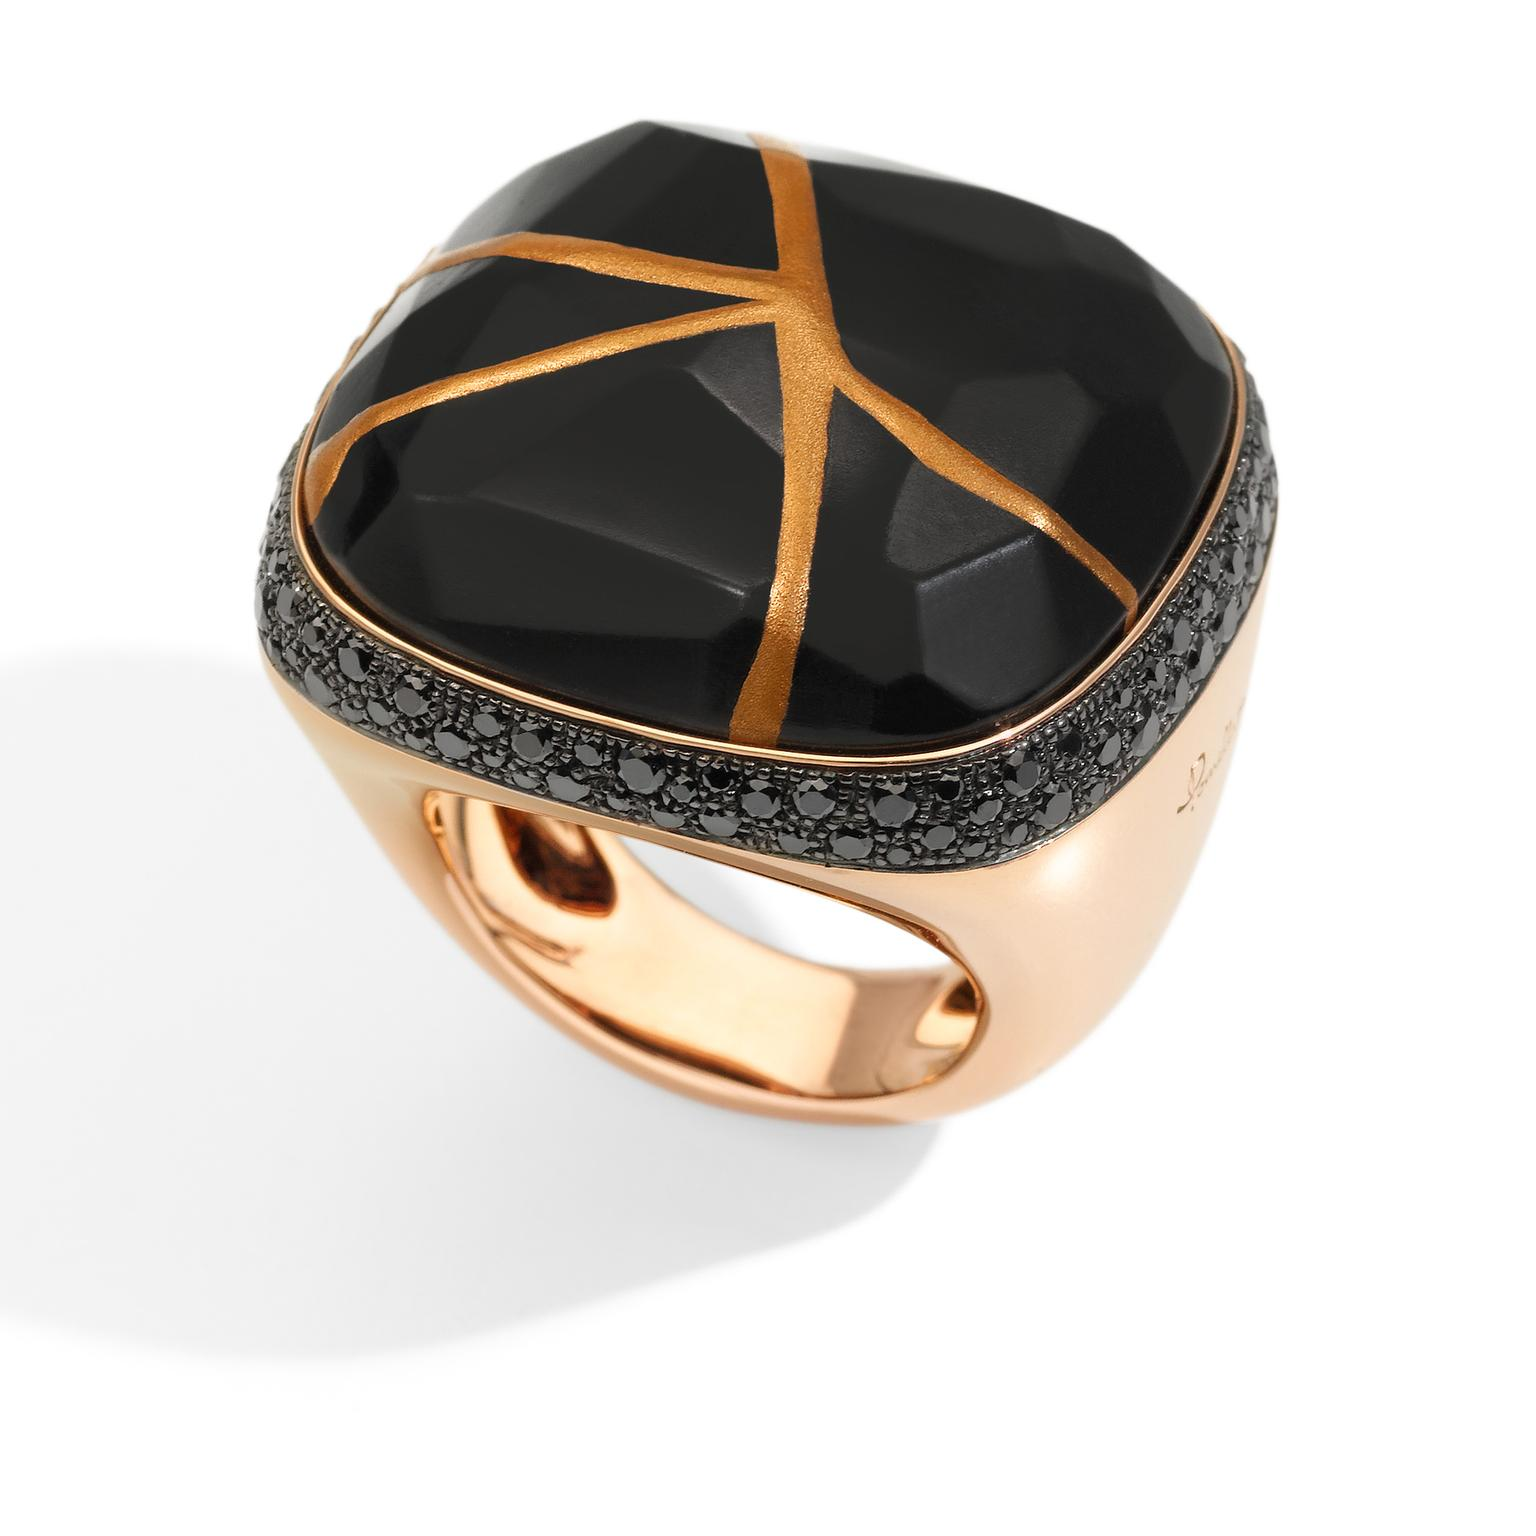 Pomellato Kintsugi Collection_ring in rose gold with jet and balck diamonds